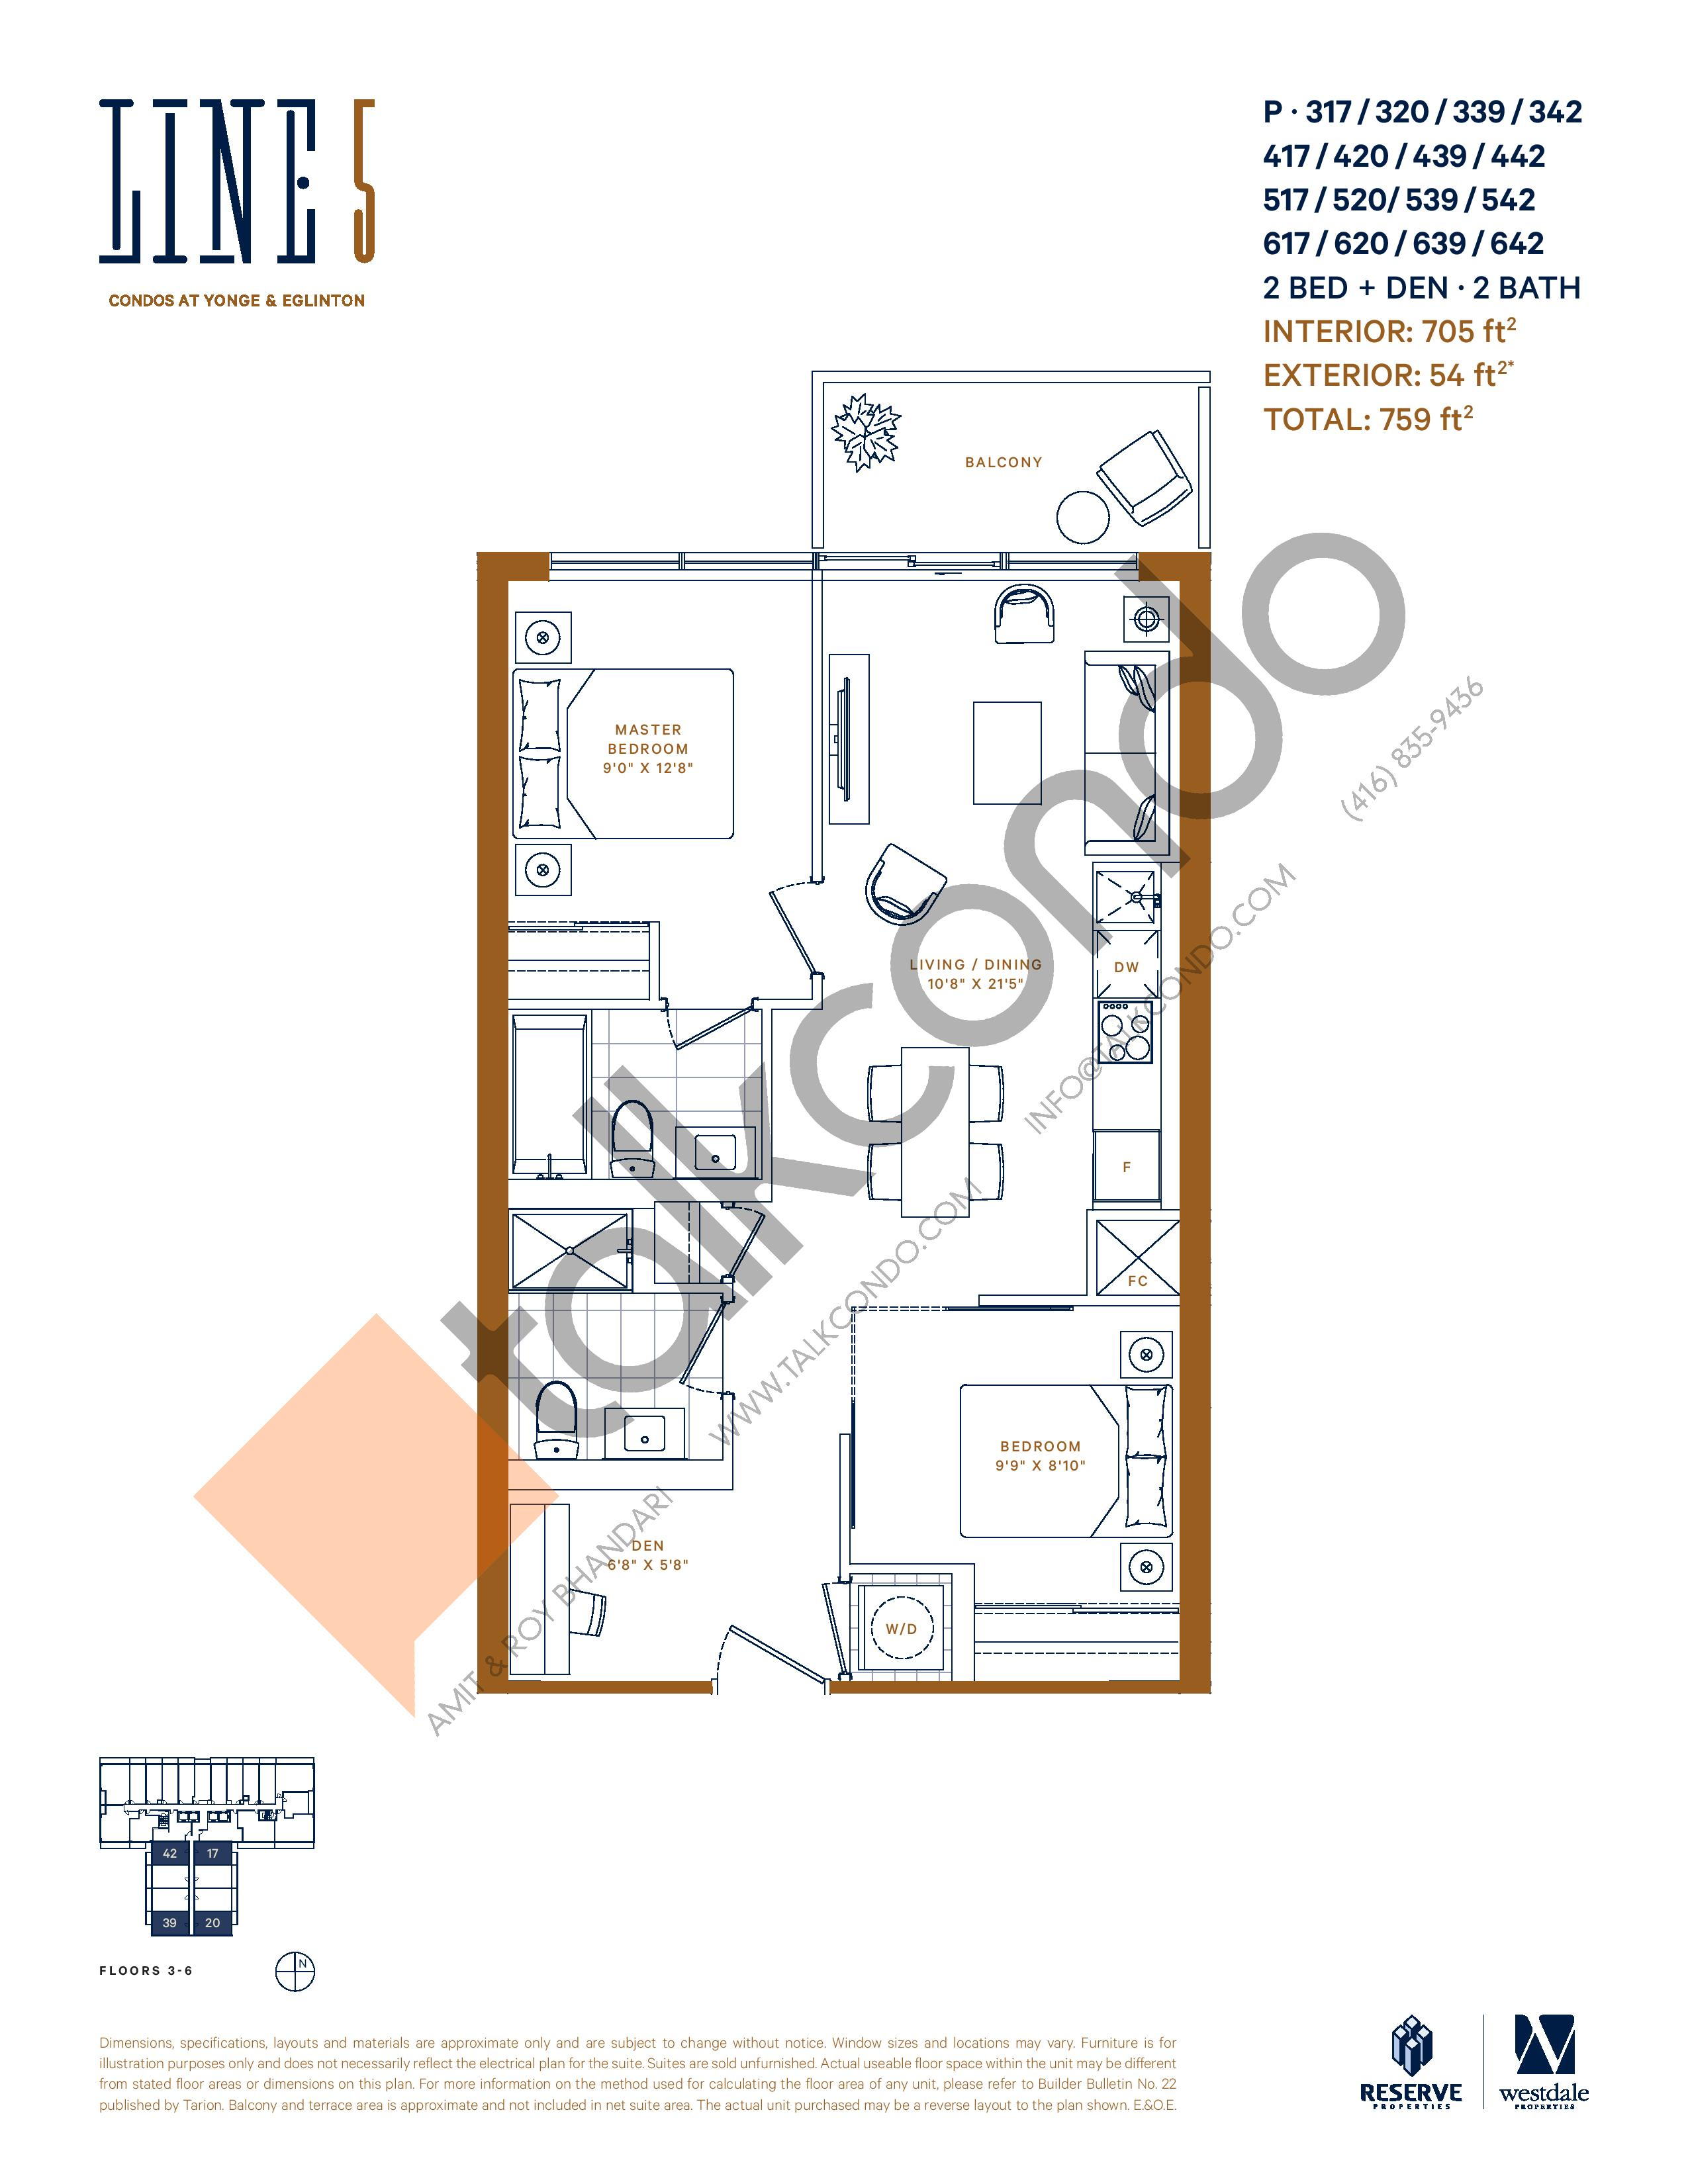 P-317 / 320 / 339 / 342 / 417 / 420 / 439 / 442 / 517 / 520 / 539 / 542 / 617 / 620 / 639 / 642 Floor Plan at Line 5 South Tower Condos - 705 sq.ft